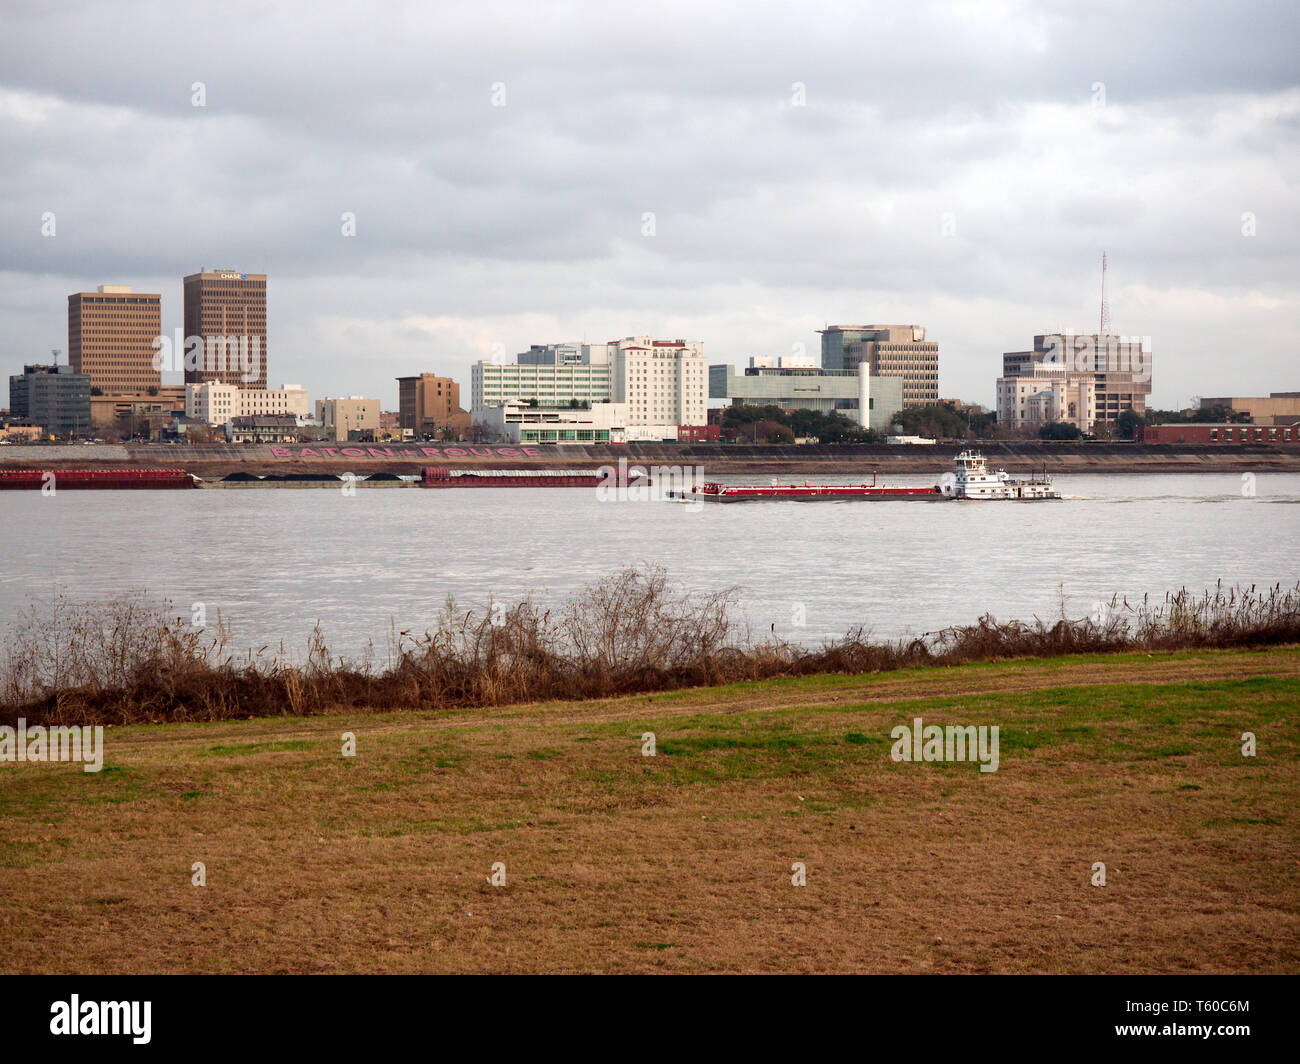 Port Allen, Louisiana, USA - 2019: Downtown Baton Rouge is seen from across the Mississippi River as a towboat  travels upstream. - Stock Image